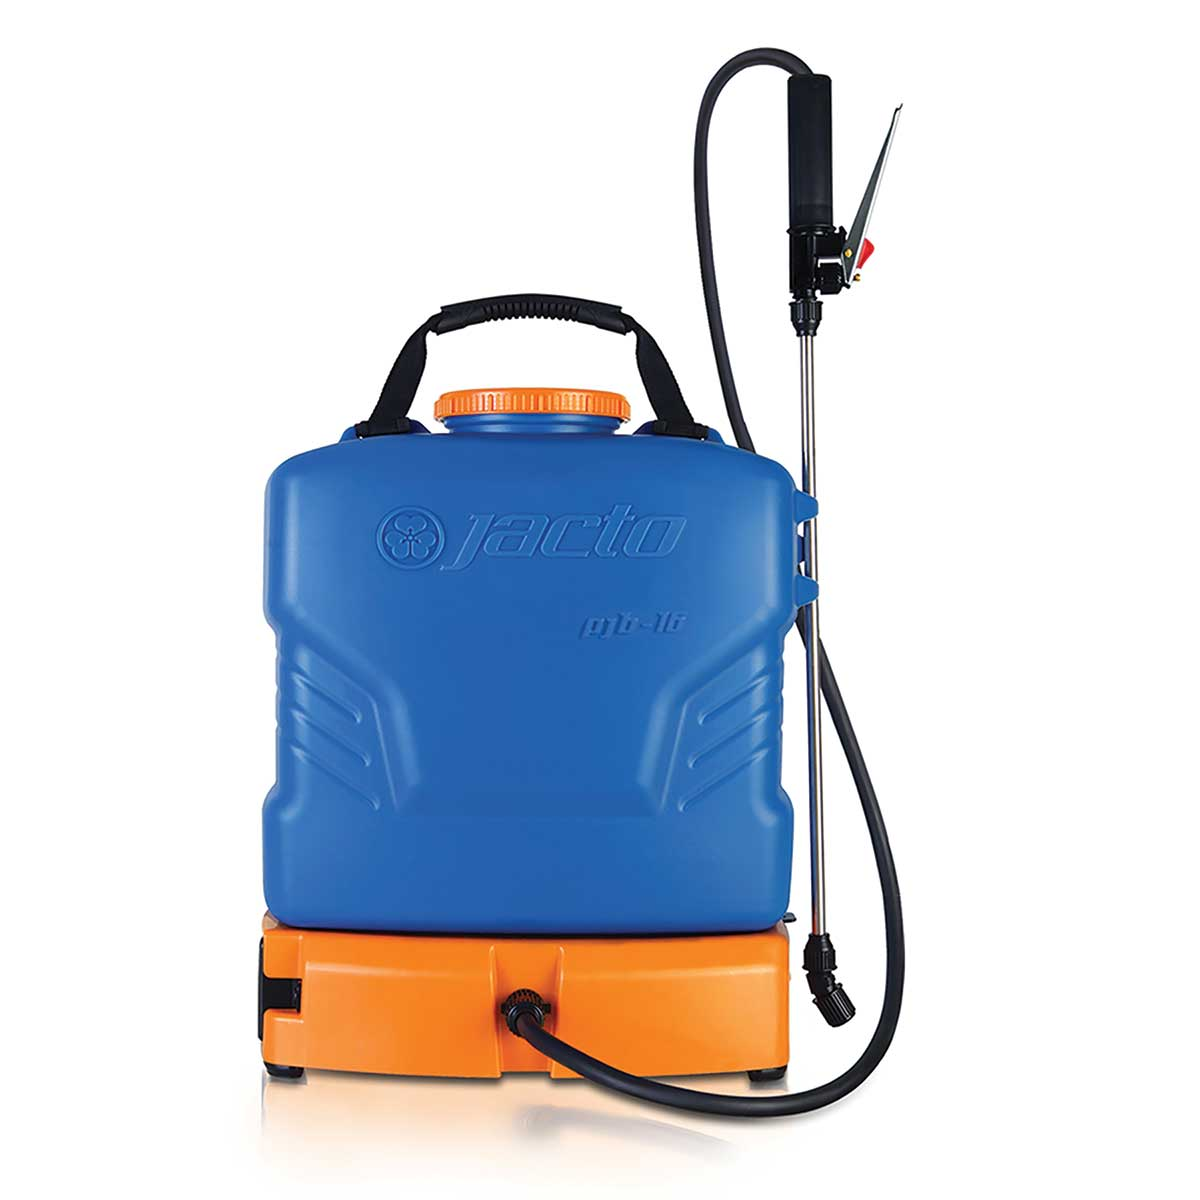 Jacto PJB-16 4 Gallon Battery Powered Backpack Sprayer